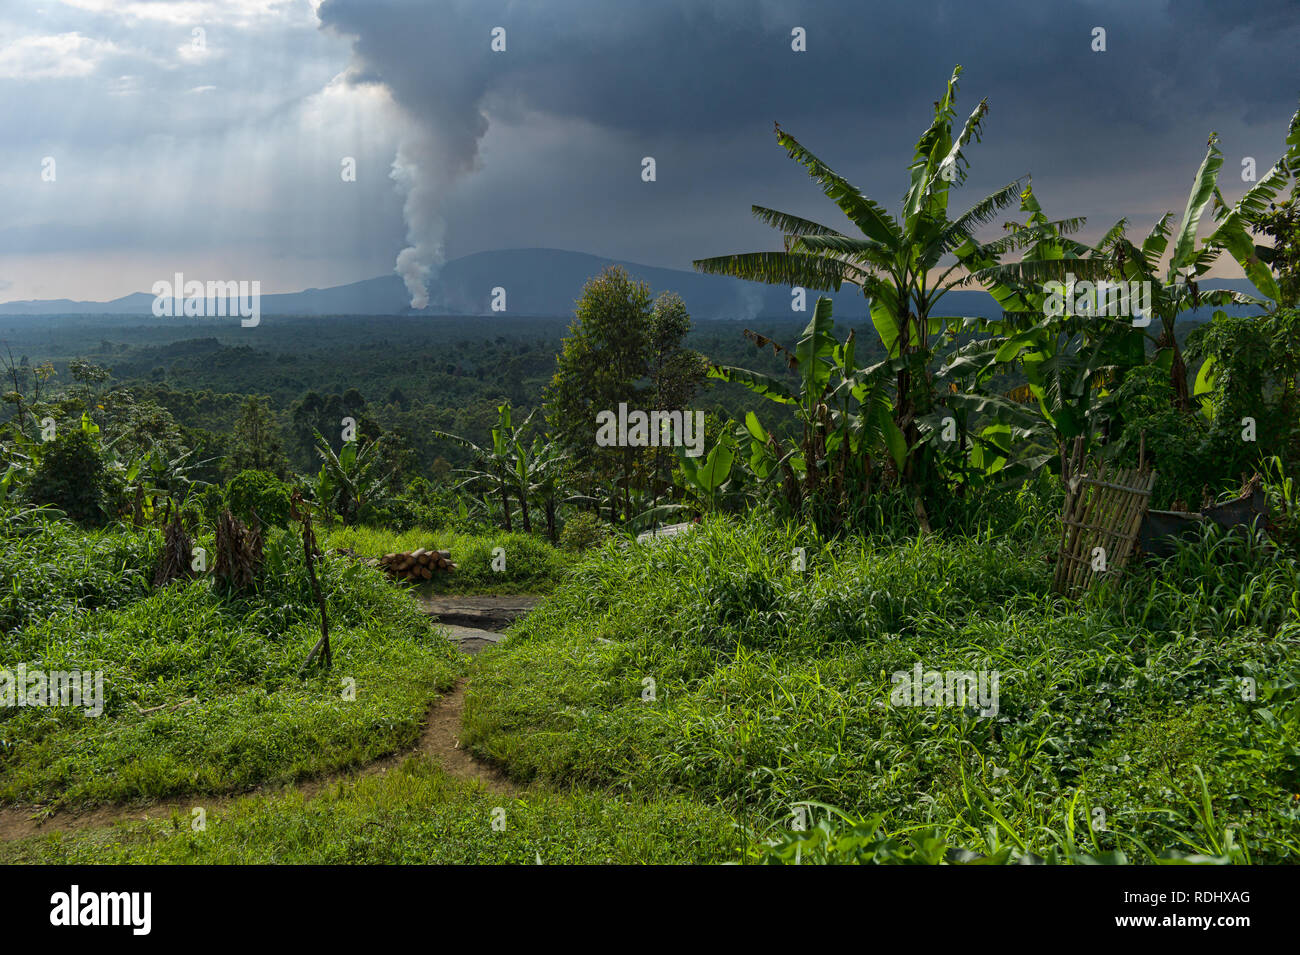 Nyamuragira, an active volcano, erupts in the background of a rural village inside Virunga National Park, Democratic Republic of Congo. - Stock Image